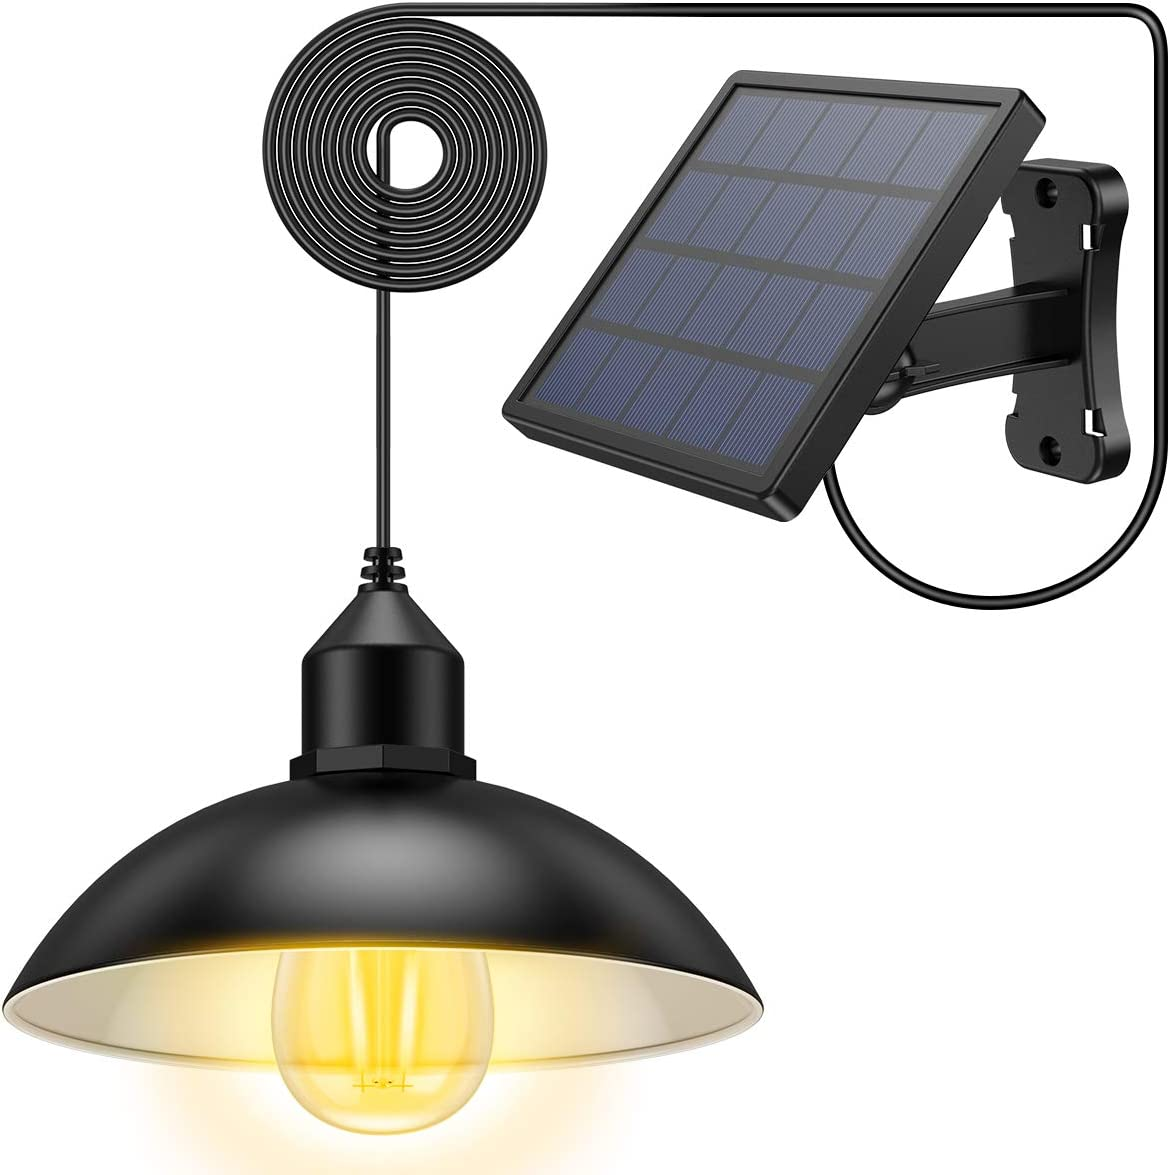 AMIR Solar Lights Outdoor, Waterproof Solar Light with Adjustable Solar Panel, Solar Chandelier for Courtyard, Garden, Patio, Corridor